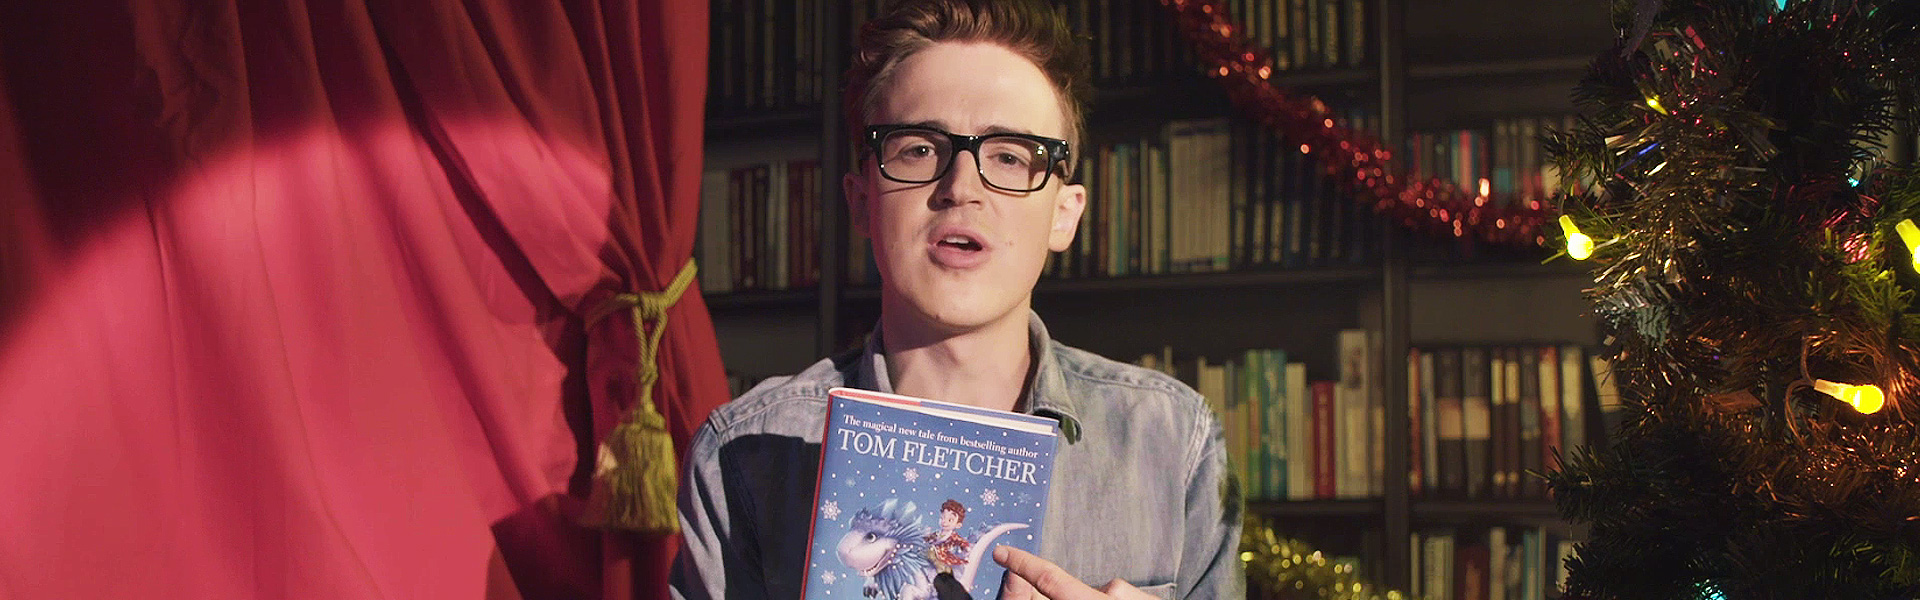 Exclusive Video! Tom Fletcher Reads an Extract from The Christmasaurus